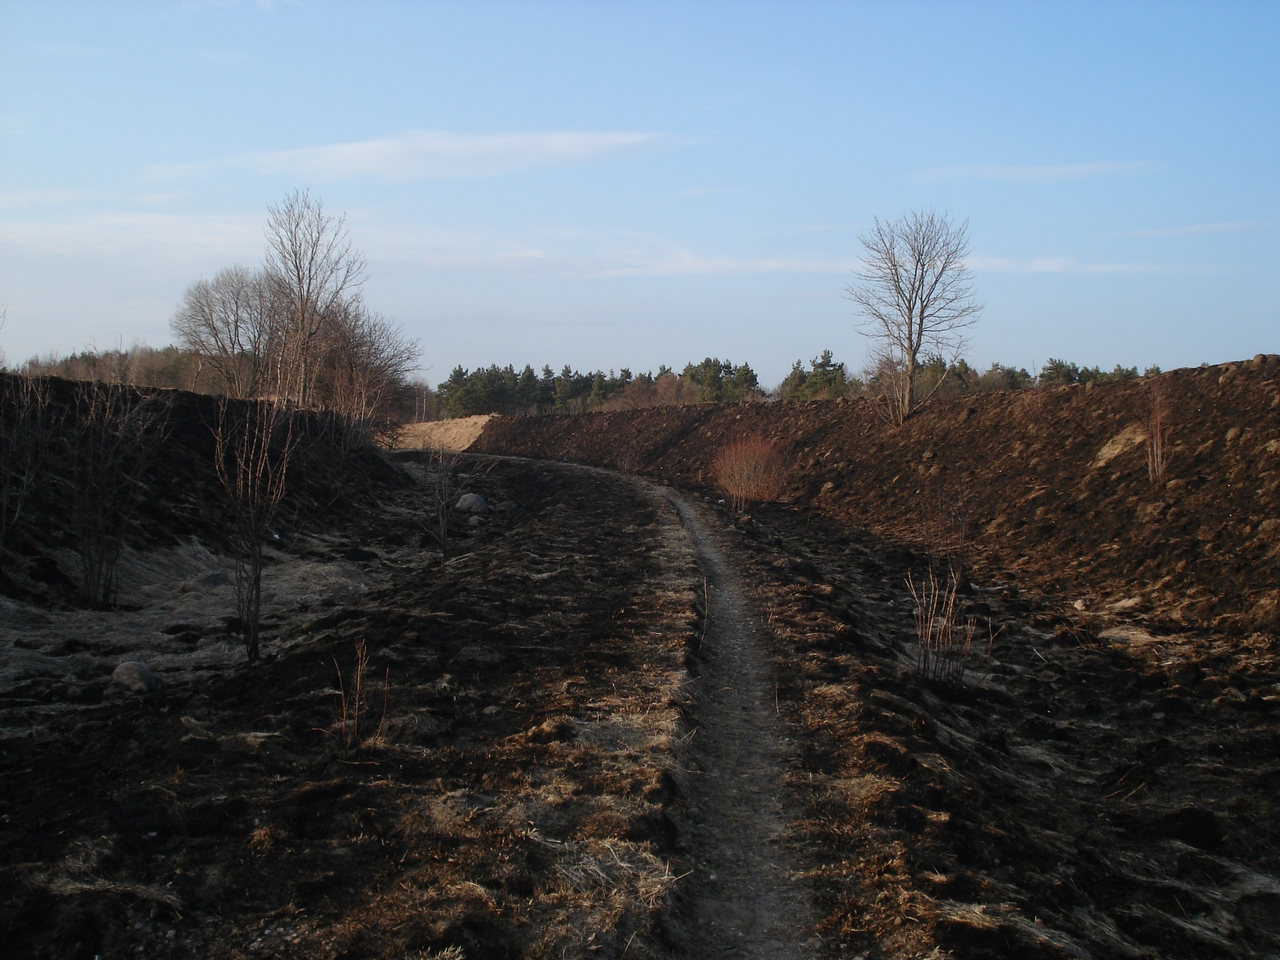 03.16 1 by Wolinpiotr